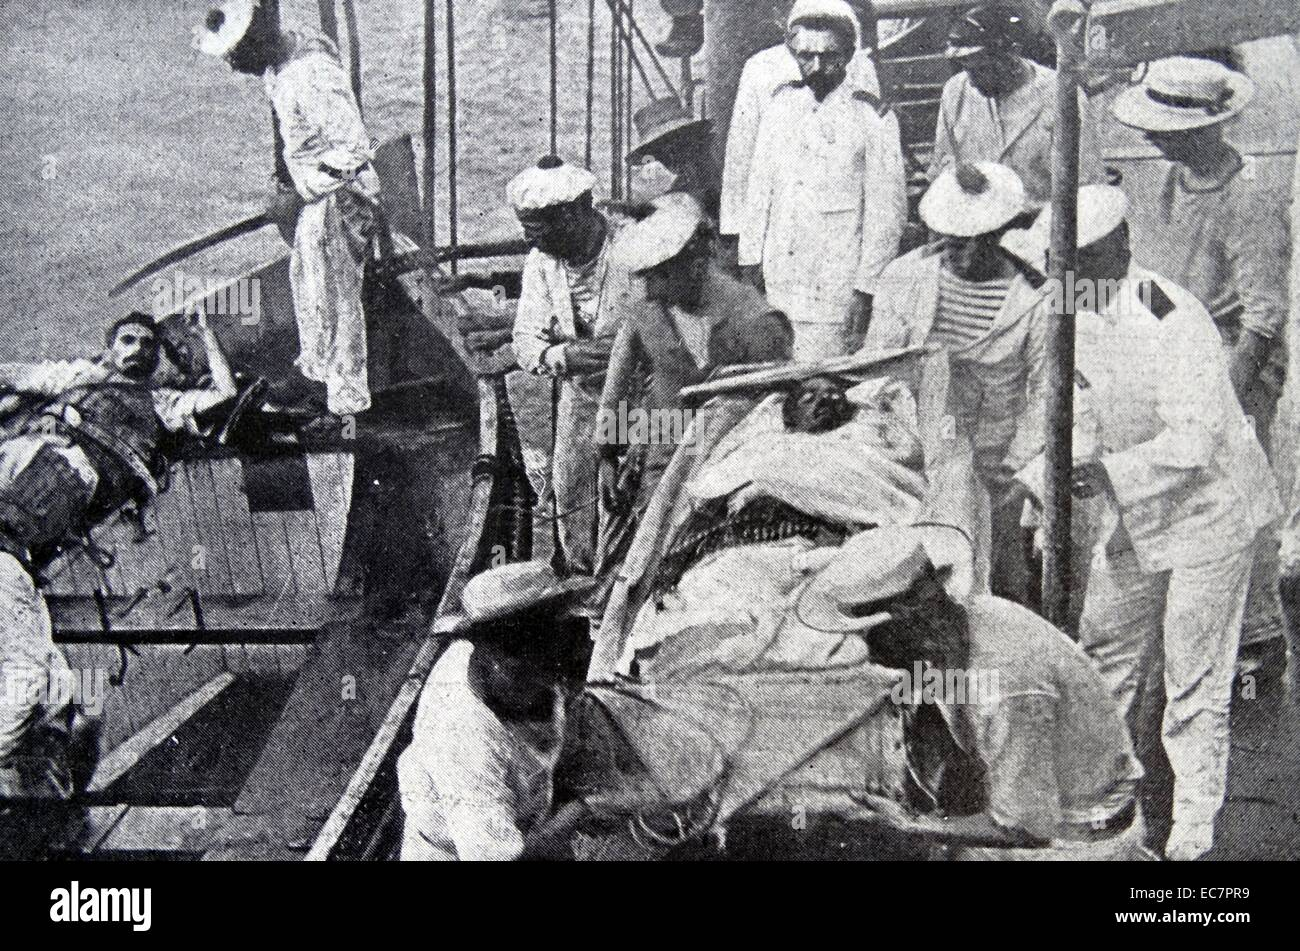 Survivors from 'Emden' sunk at the Battle of Cocos  9 November 1914 - Stock Image